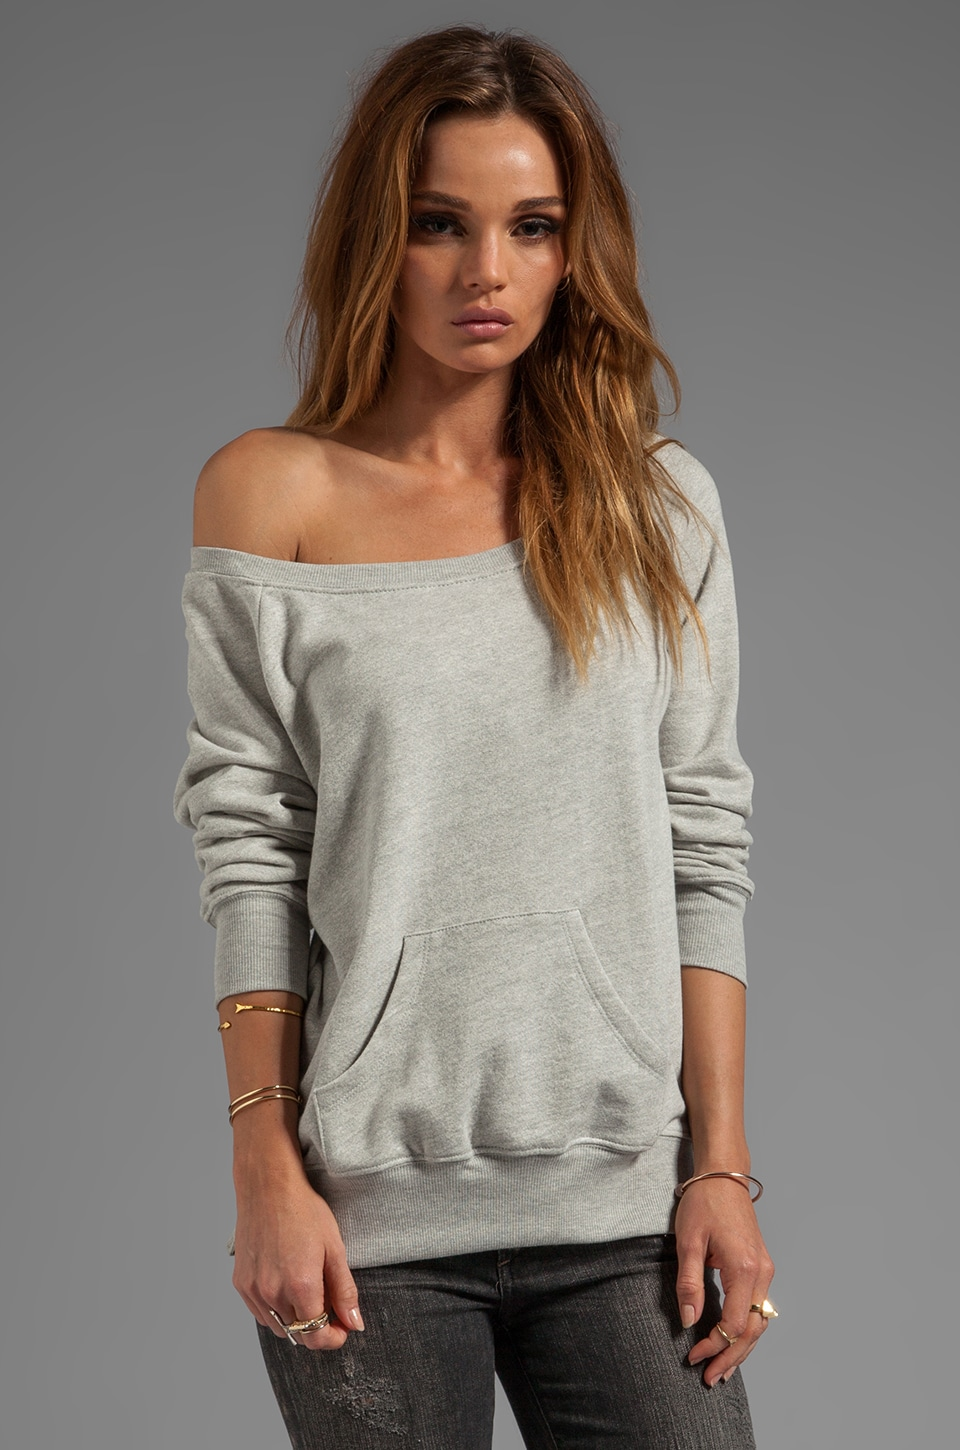 291 Off the Shoulder Sweatshirt with Zips in Heather Grey